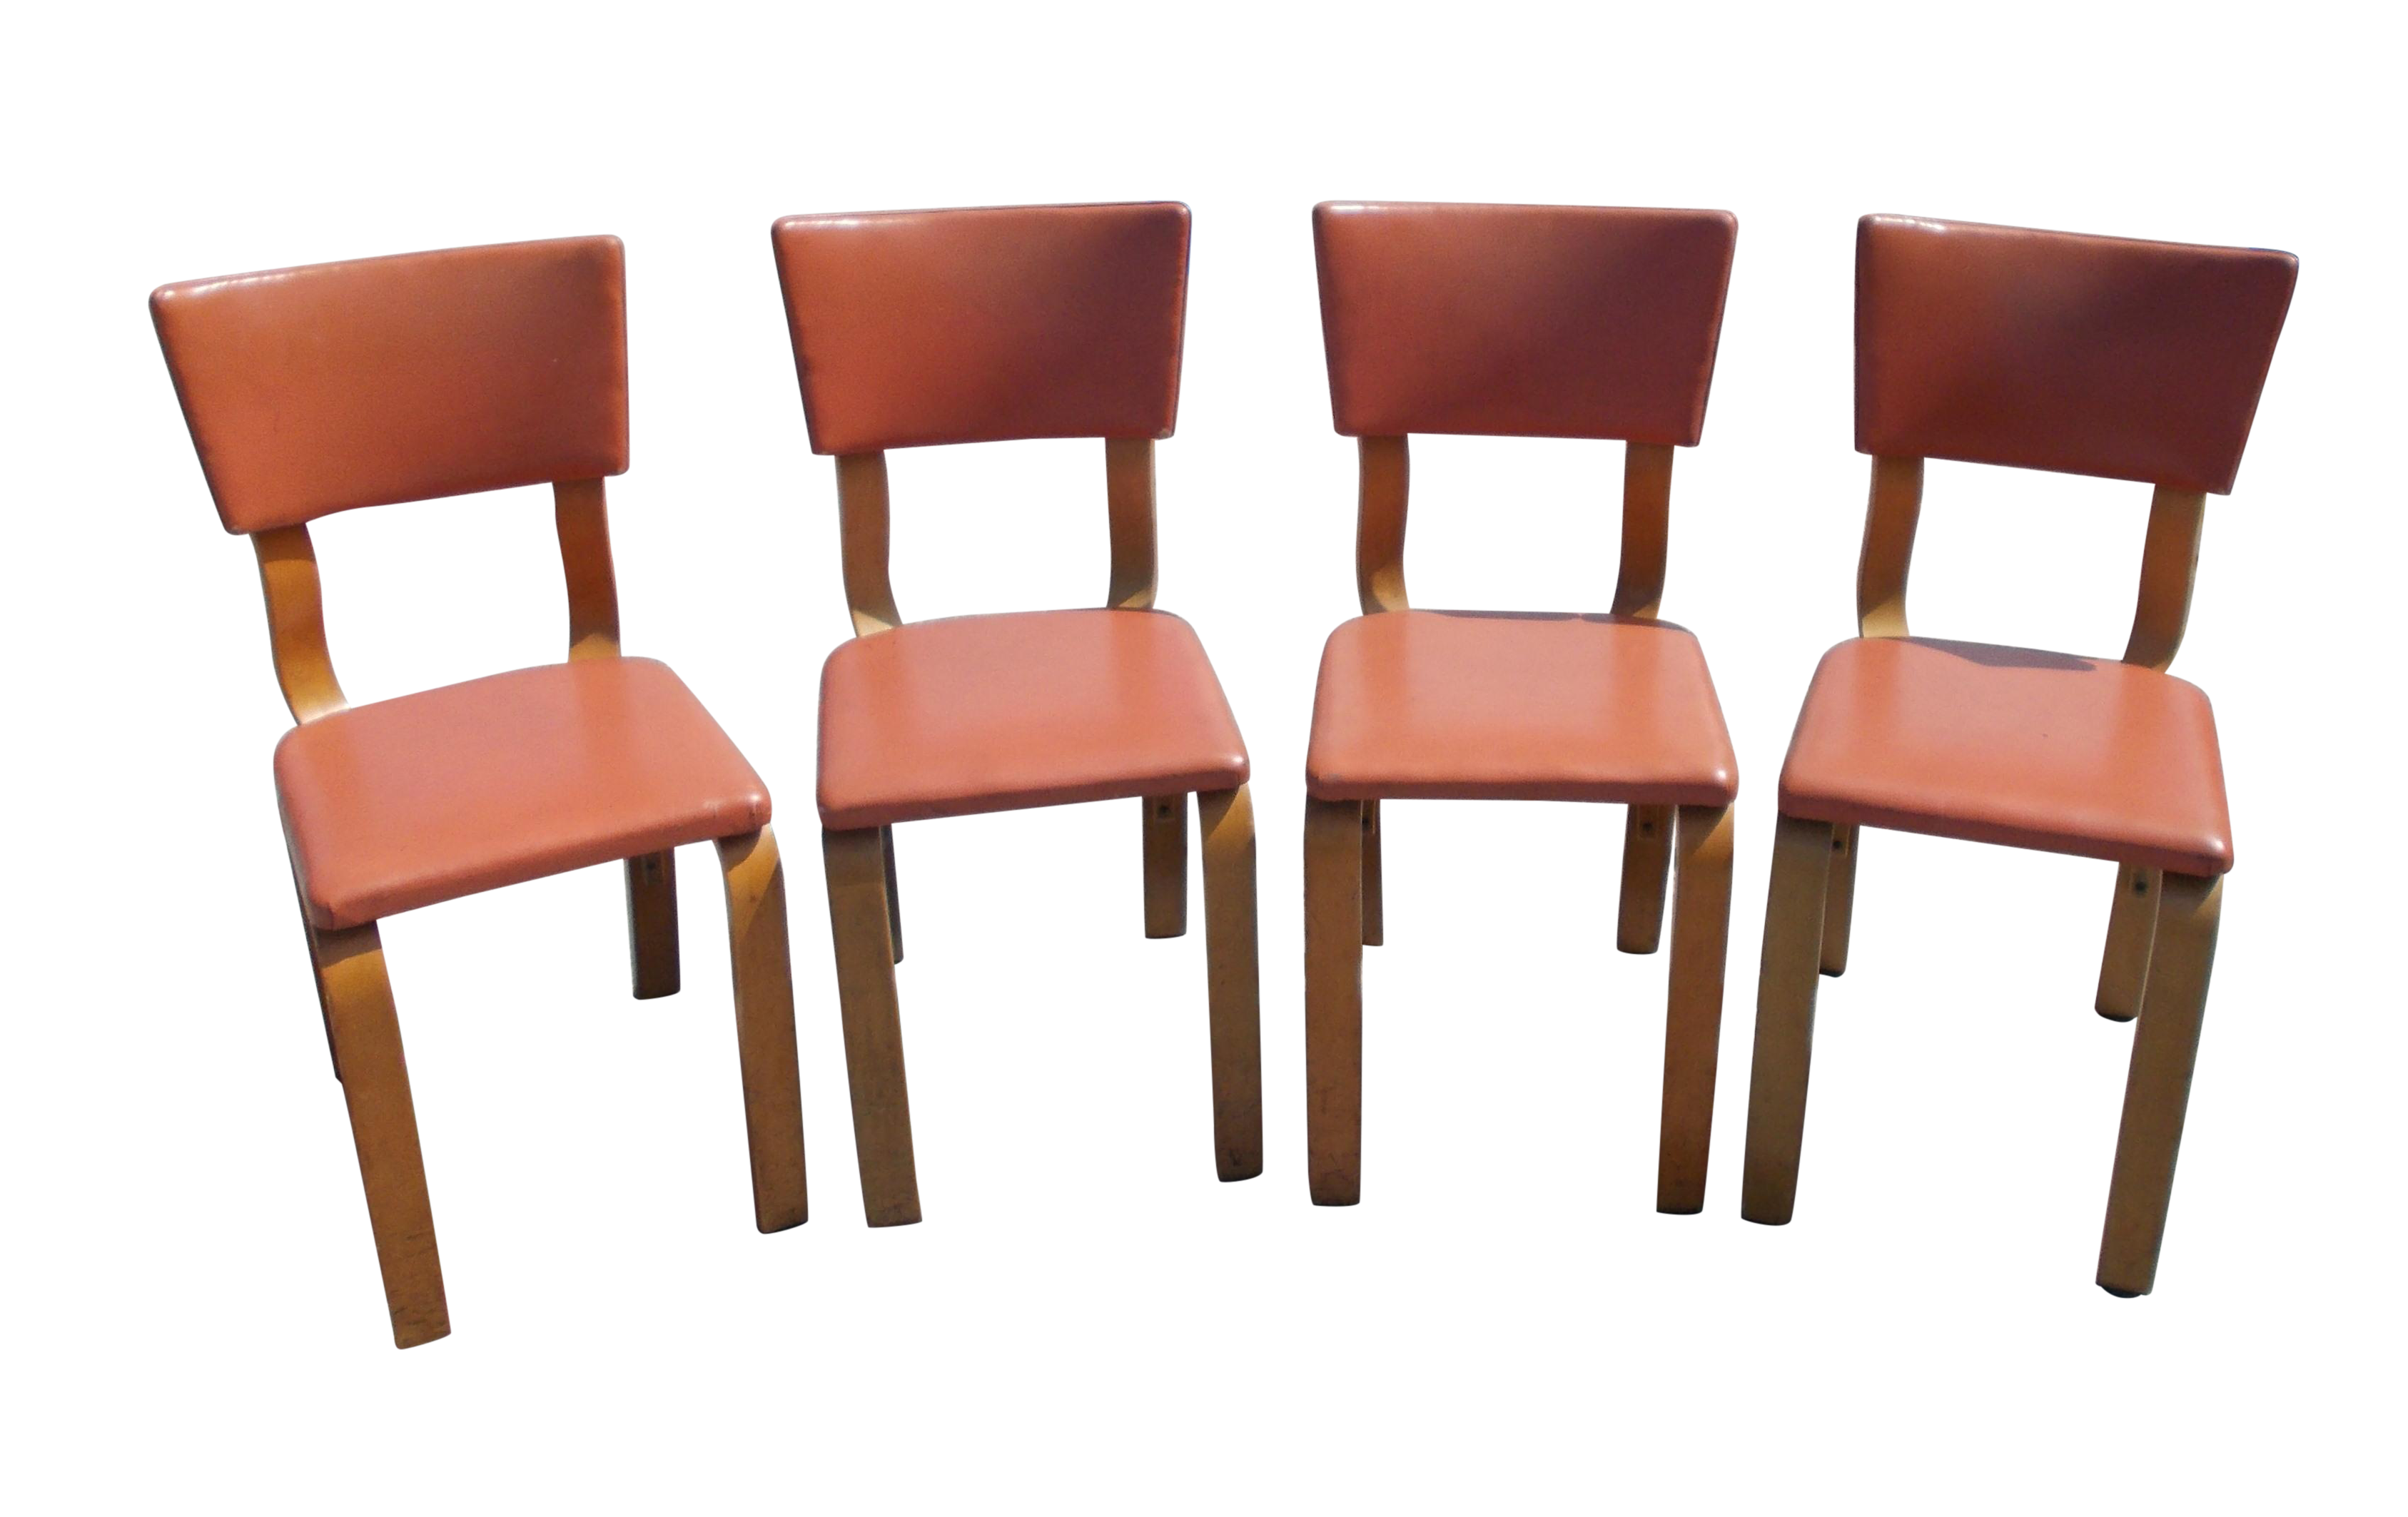 Thonet Bentwood Chairs - 4  sc 1 st  Chairish & Gently Used Thonet Furniture | Up to 50% off at Chairish islam-shia.org